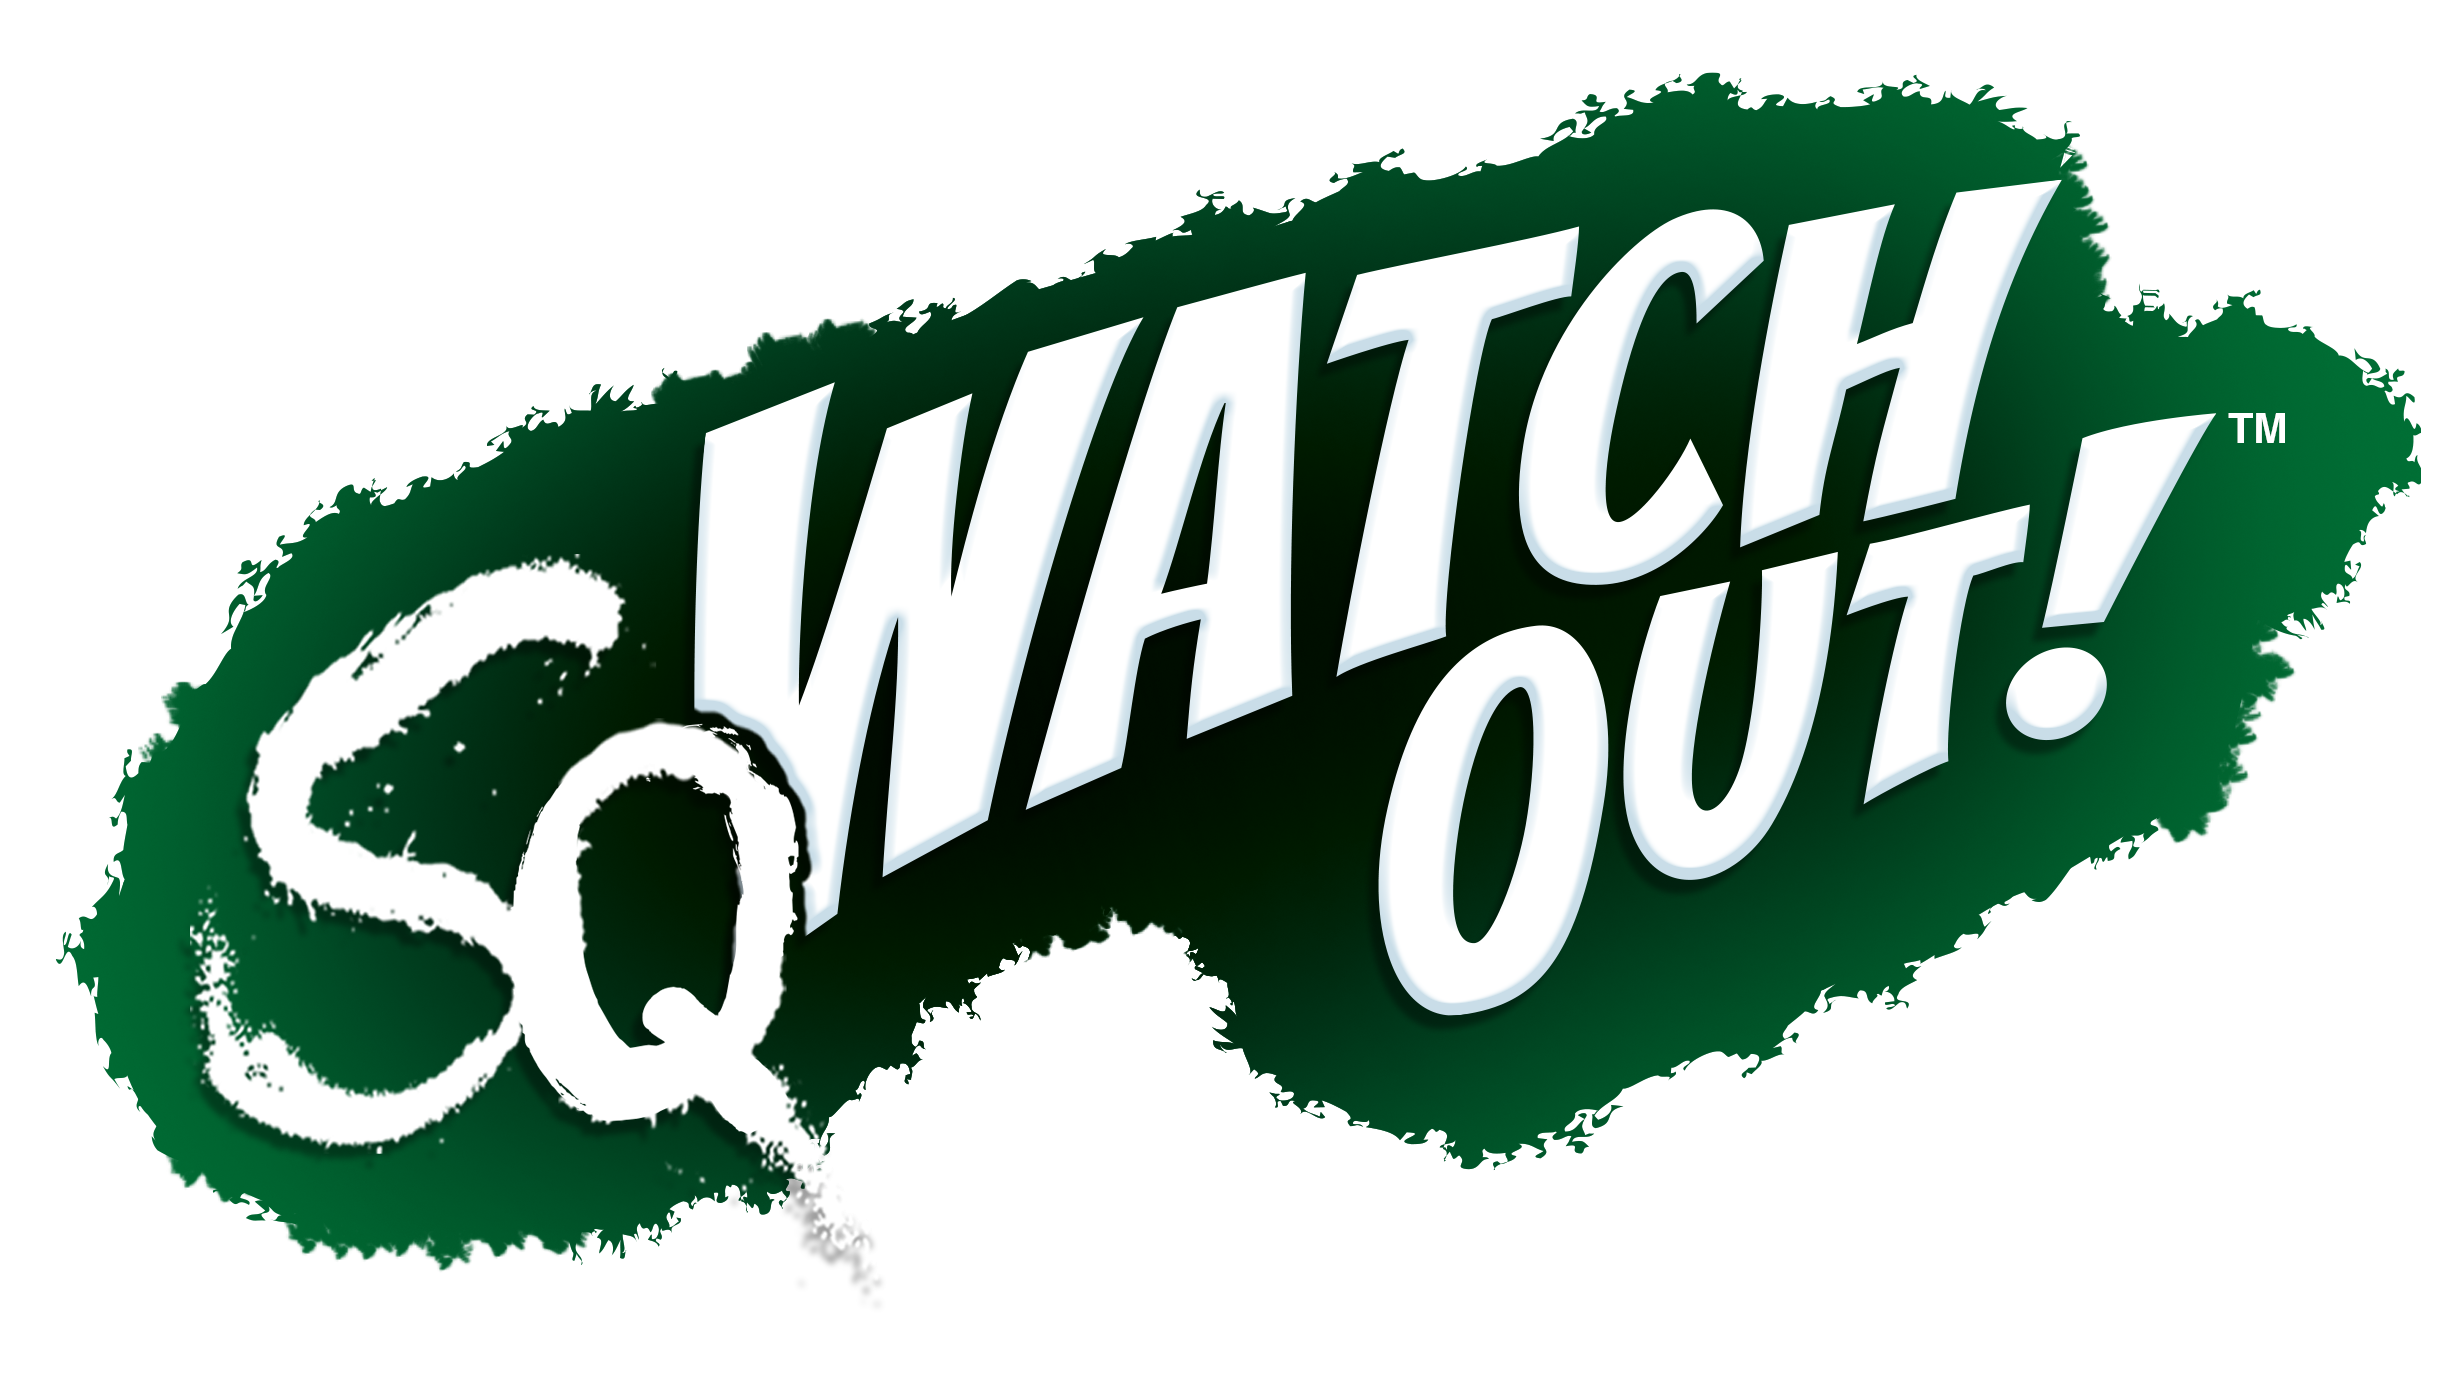 sqWATCH OUT!™ game logo